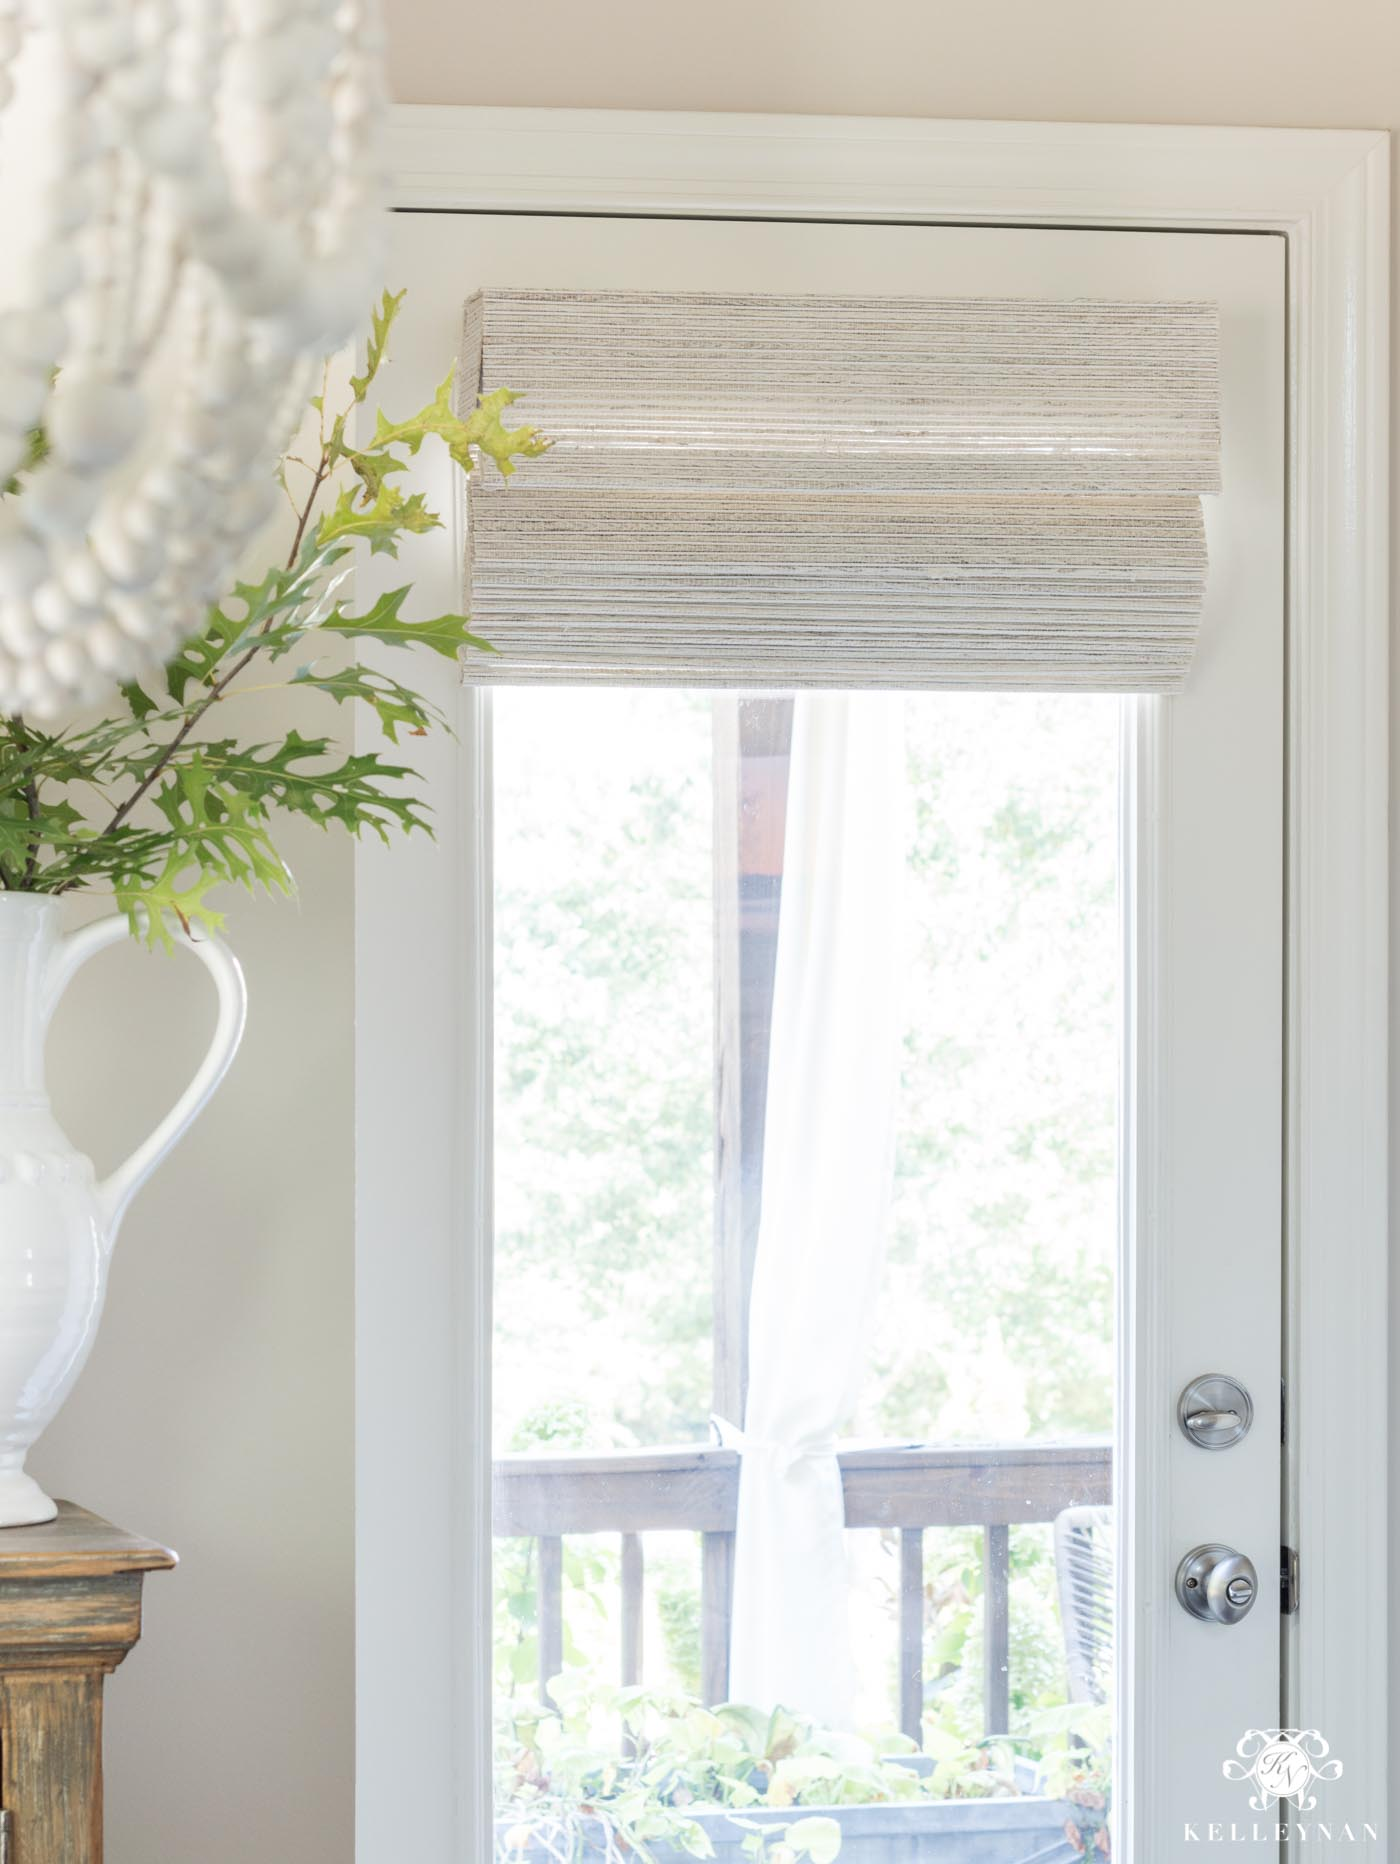 Cordless Woven Shades for a Window Door